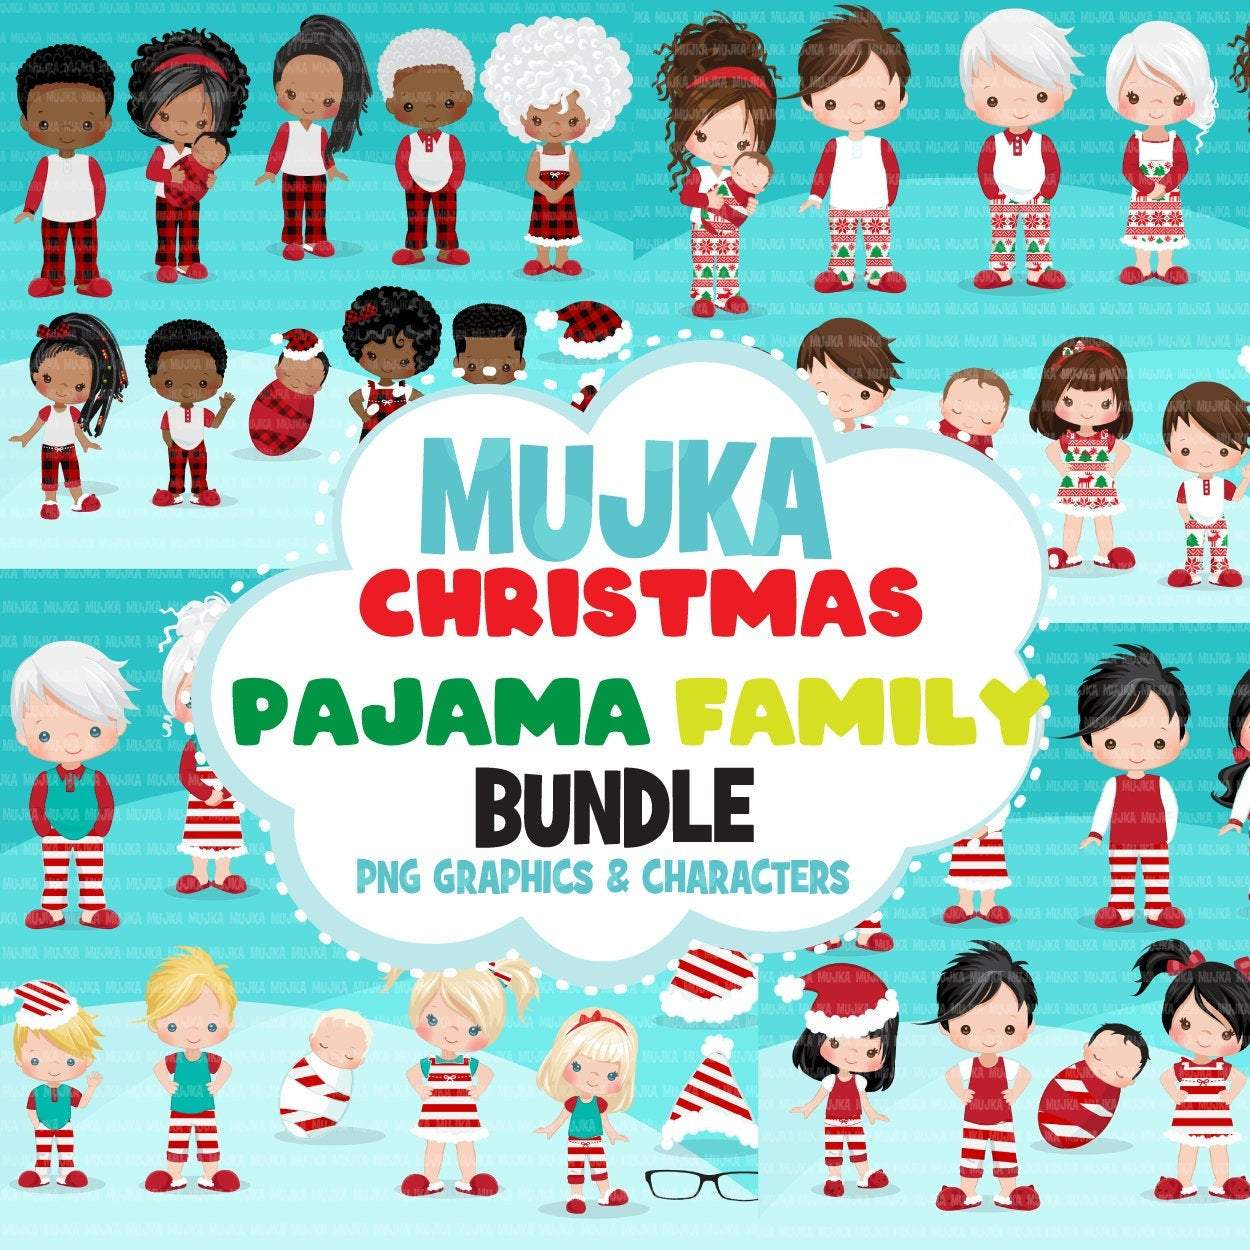 Christmas pajama clipart bundle, Noel Illustrations, pajama family, commercial use graphics, make your own family, Png sublimation clip art